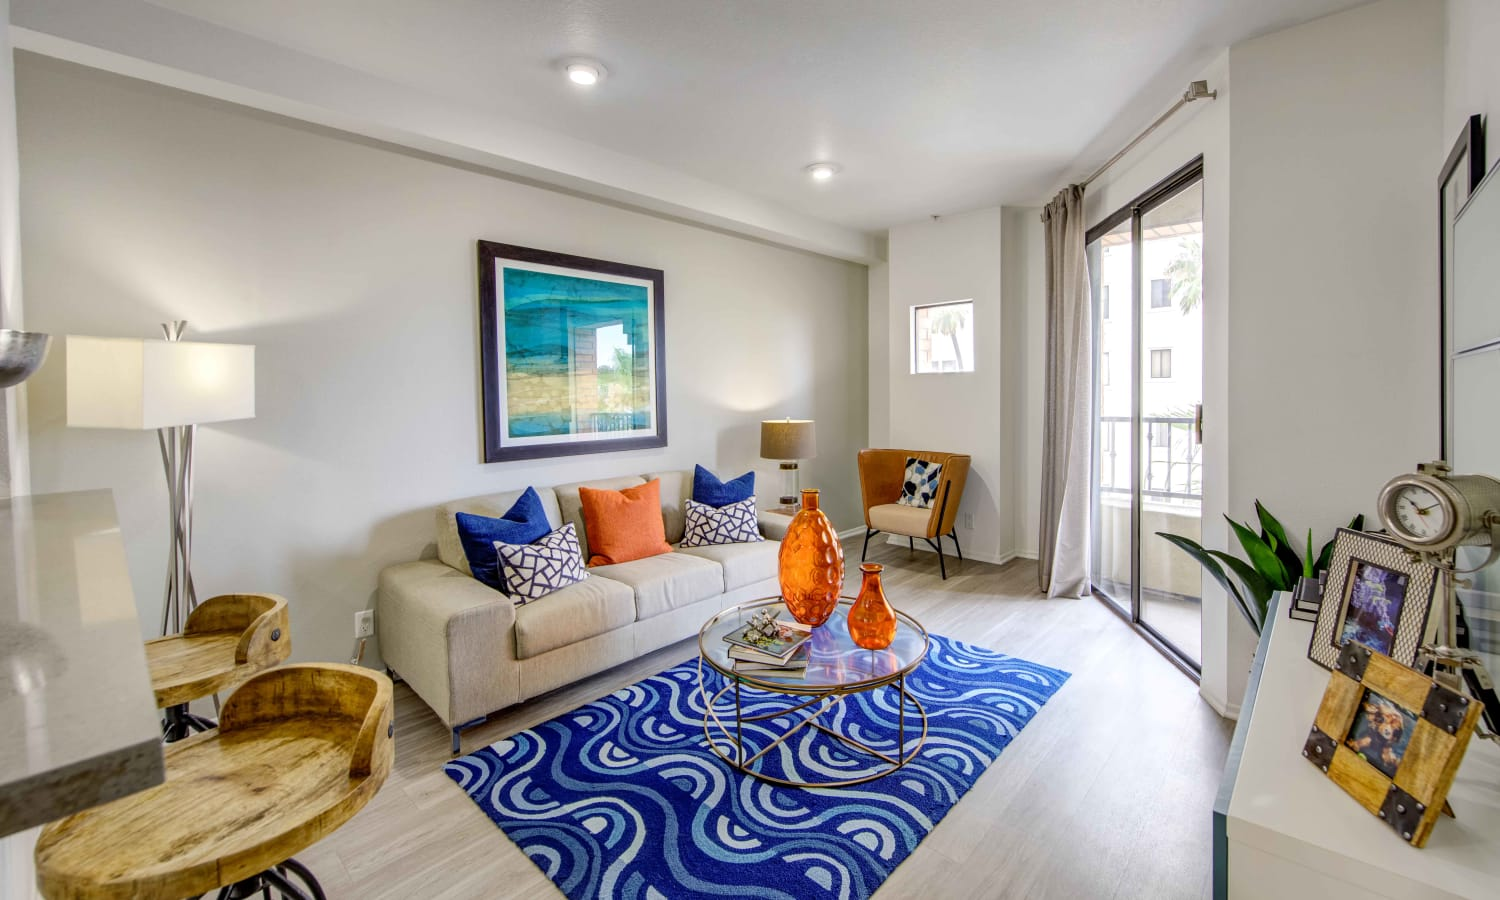 Sofi at 3rd offers a beautiful living room in Long Beach, California